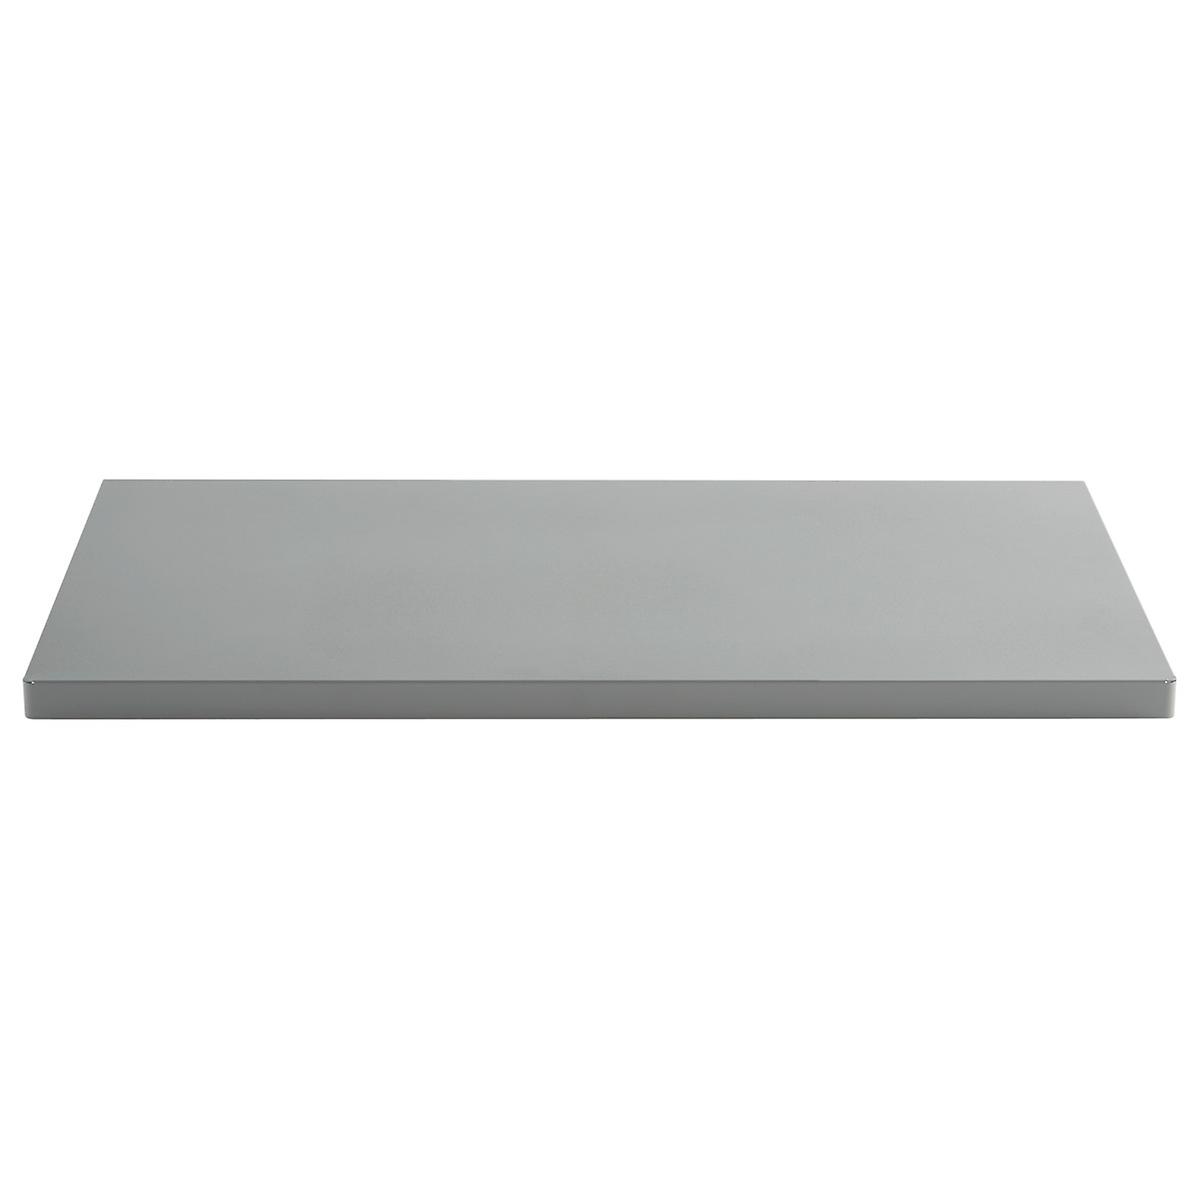 Grey elfa utility work surface the container store for Surface container